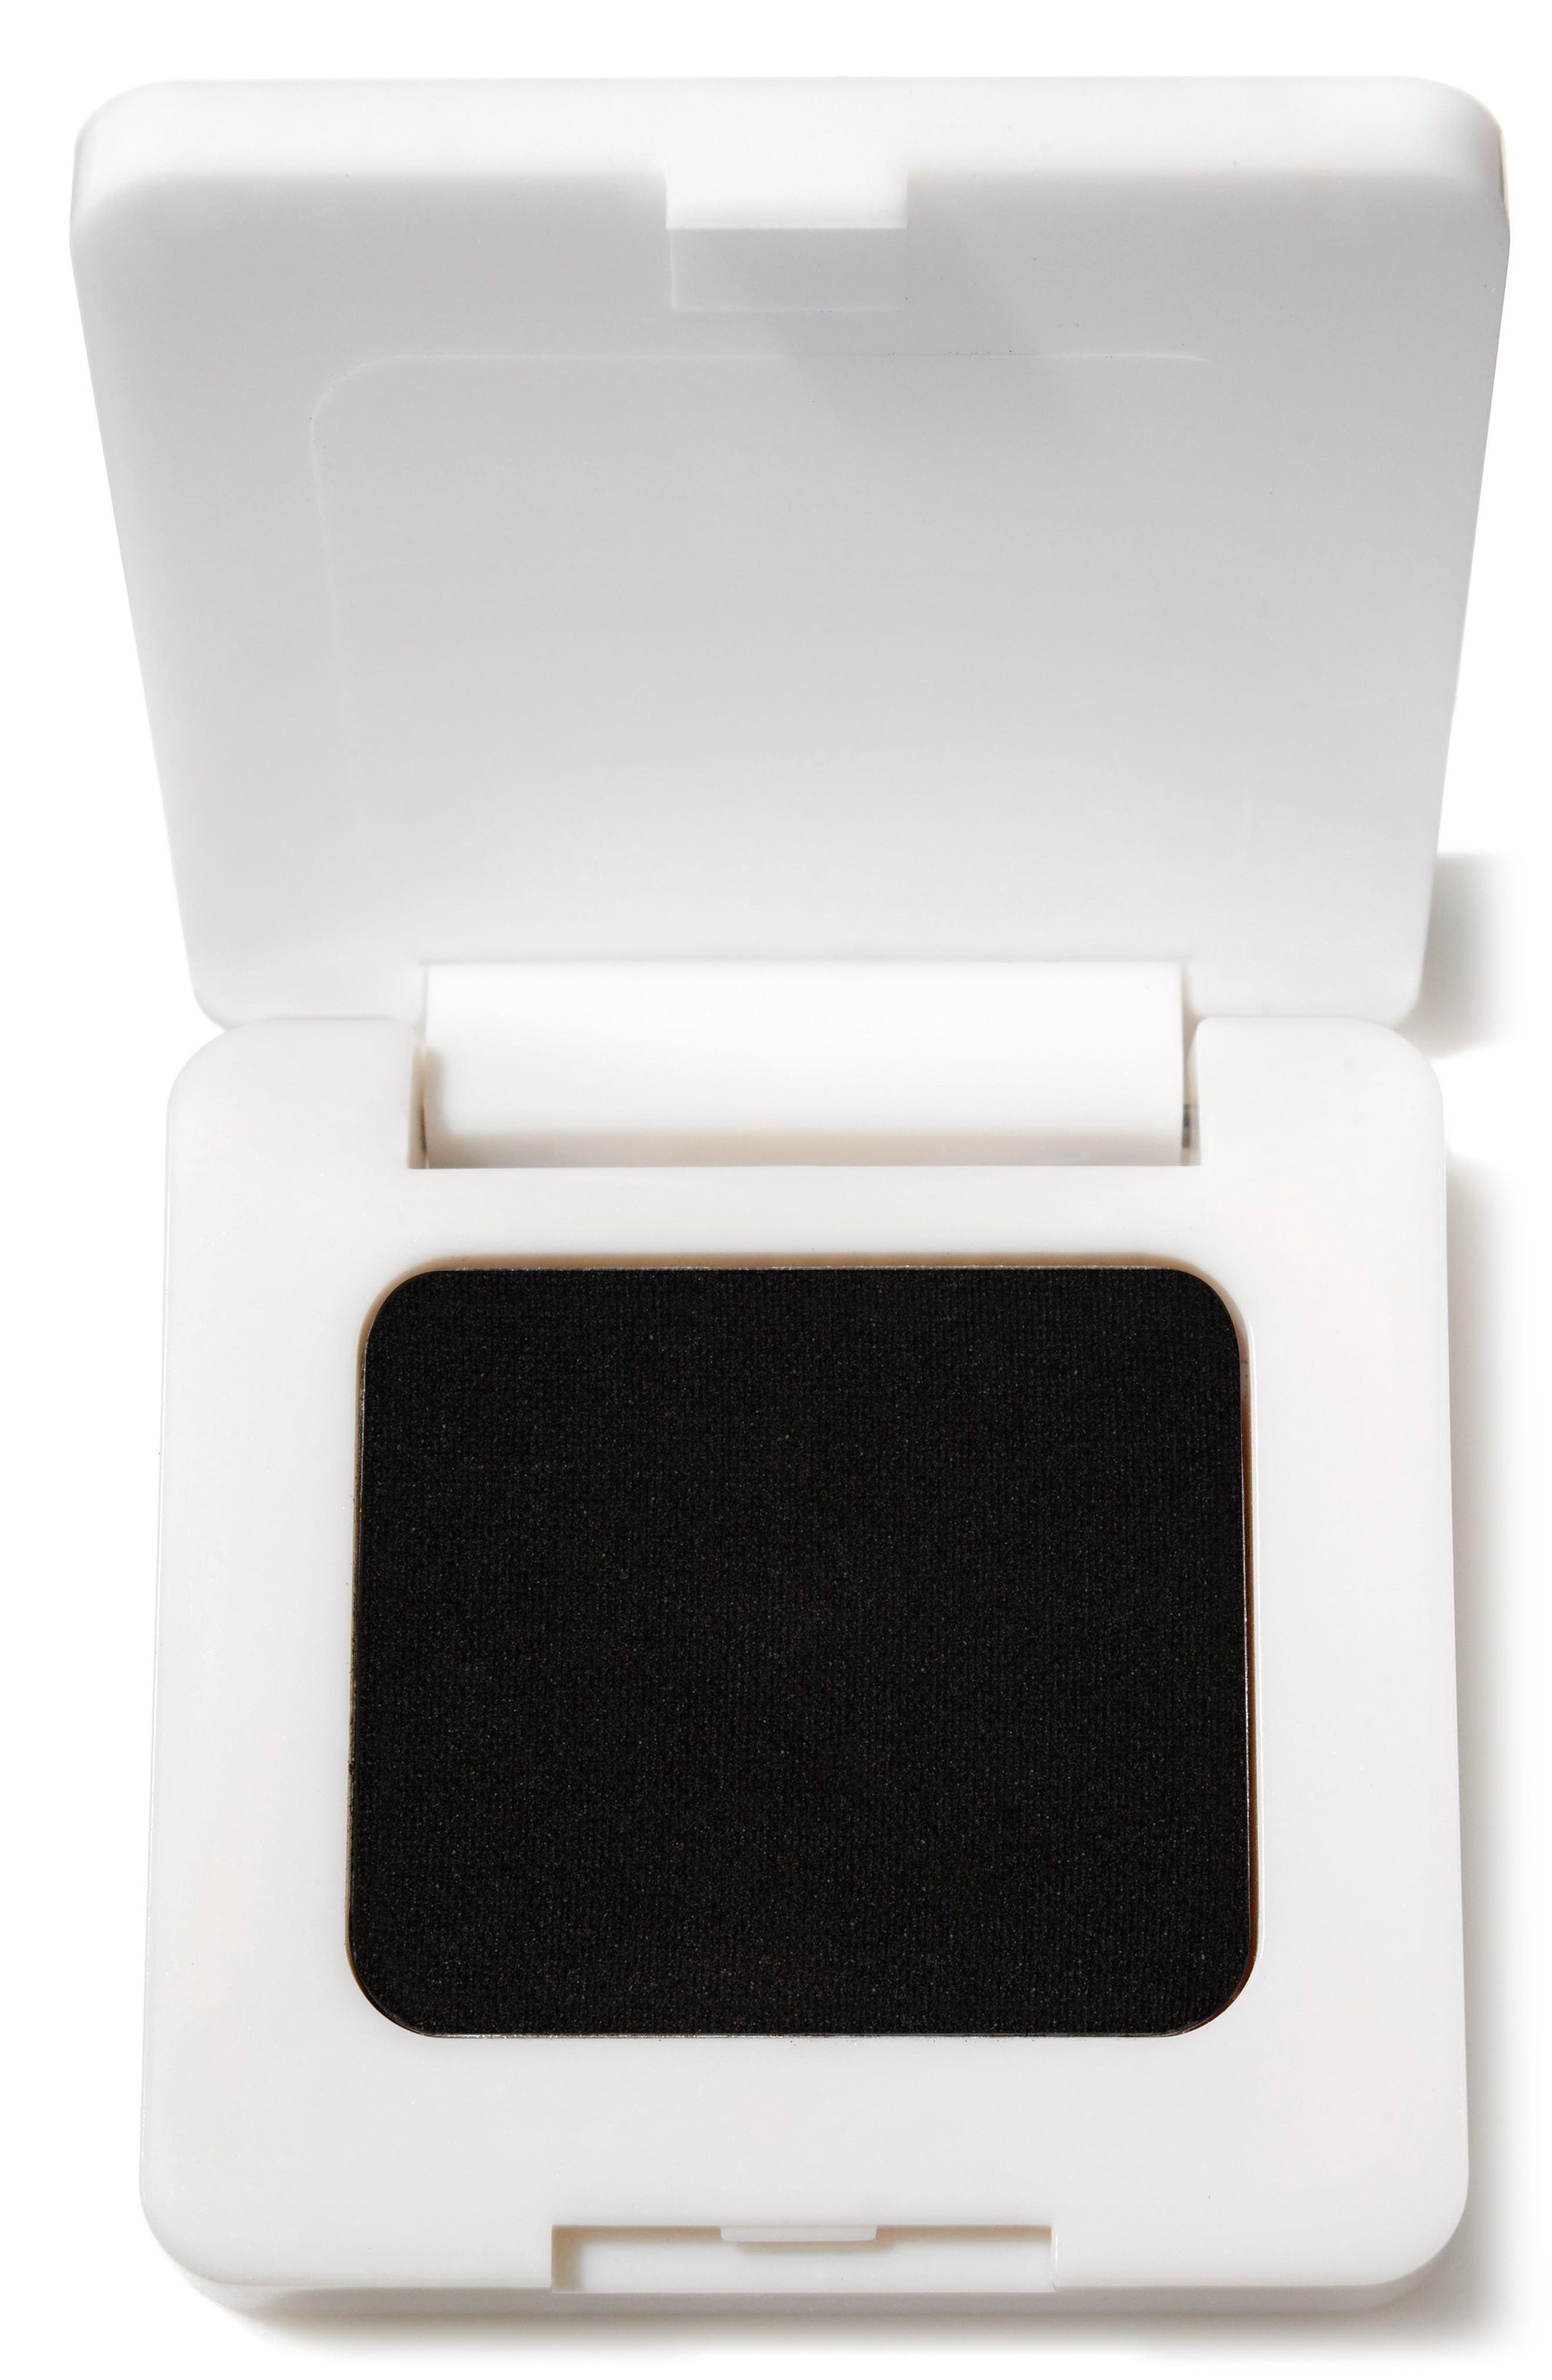 Main Image - RMS Beauty Vintage Cake Liner